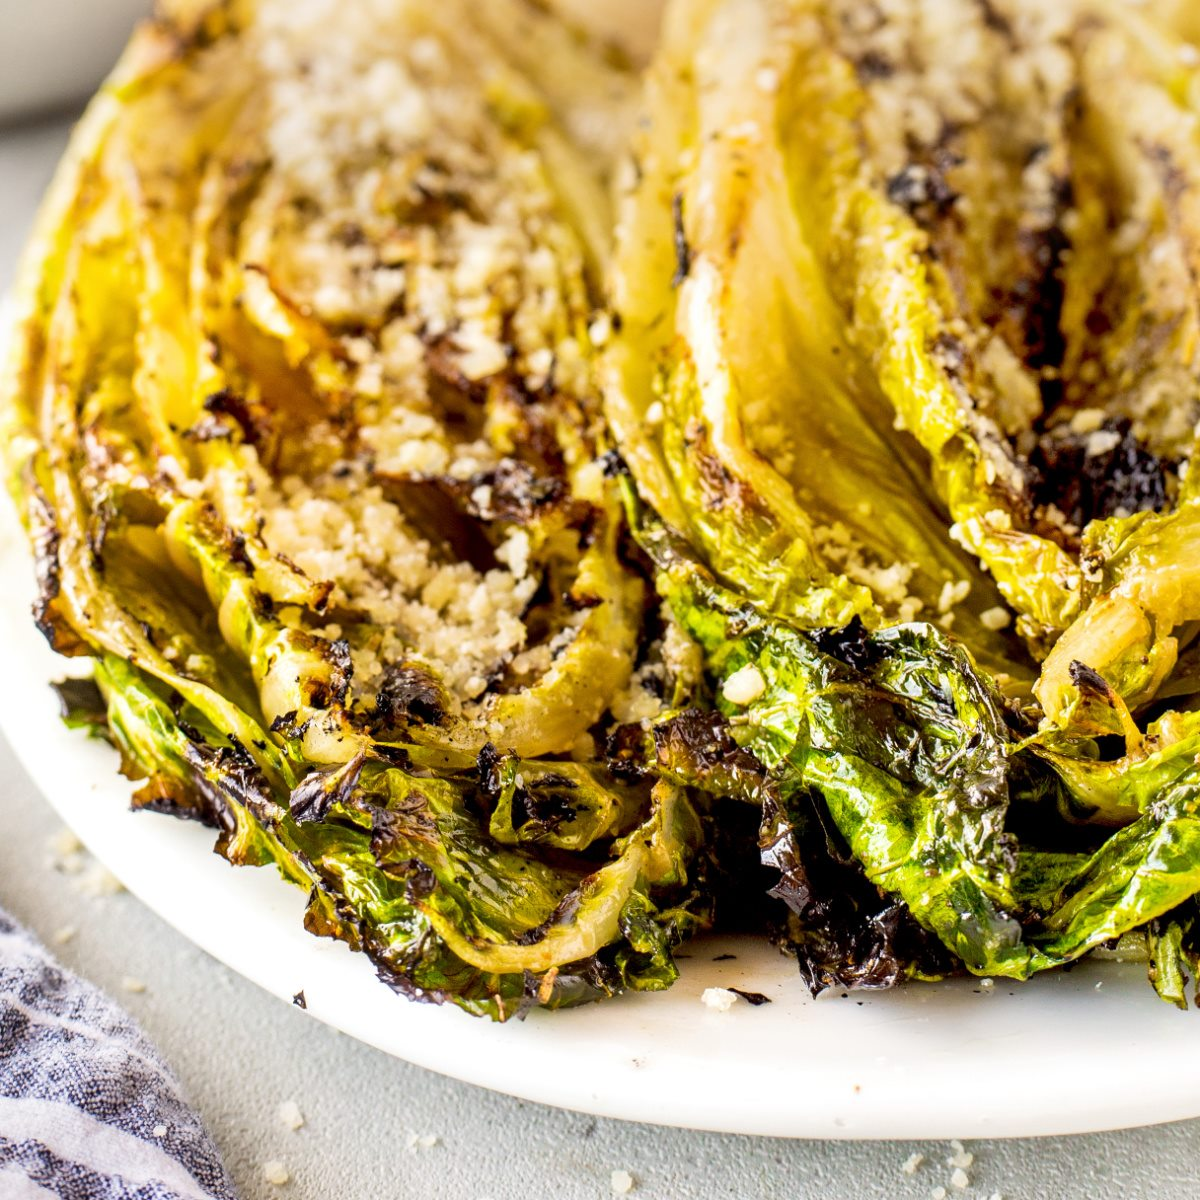 Close up picture of grilled romaine lettuce halves on a white platter with grated cheese sprinkled on top.